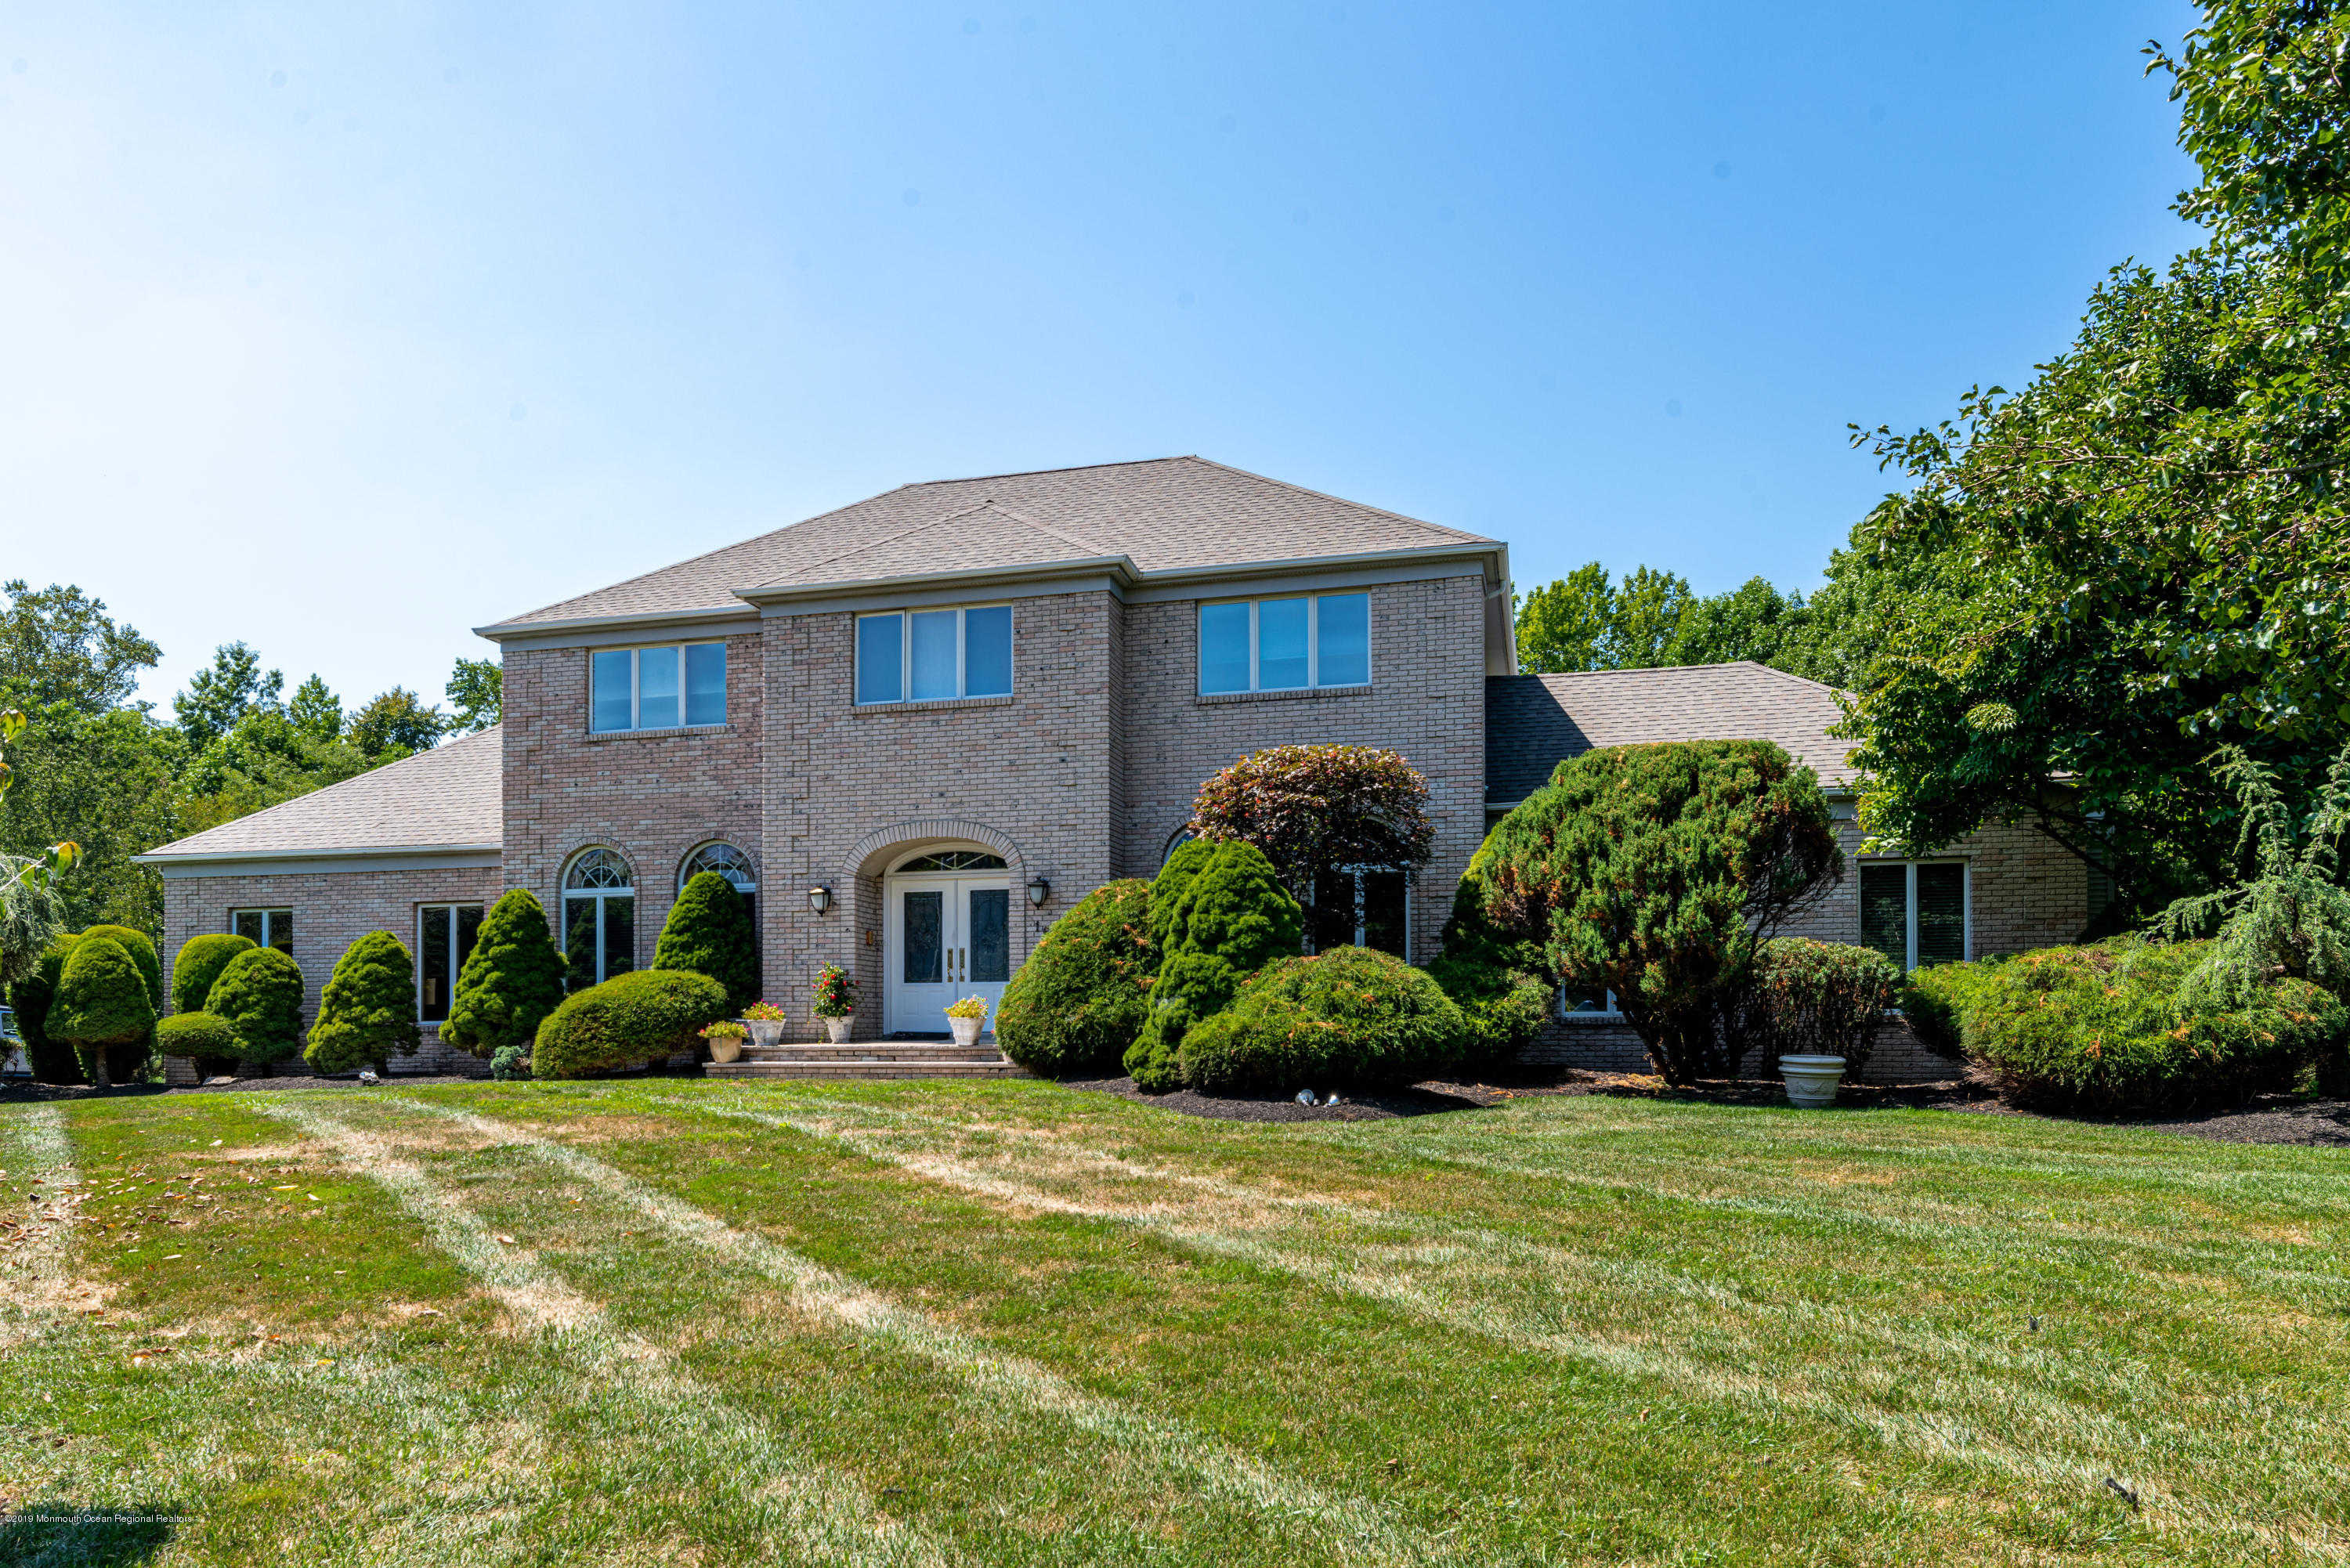 Another Property Sold - 16 Lenape Trail, Freehold twp (fre), NJ 07728